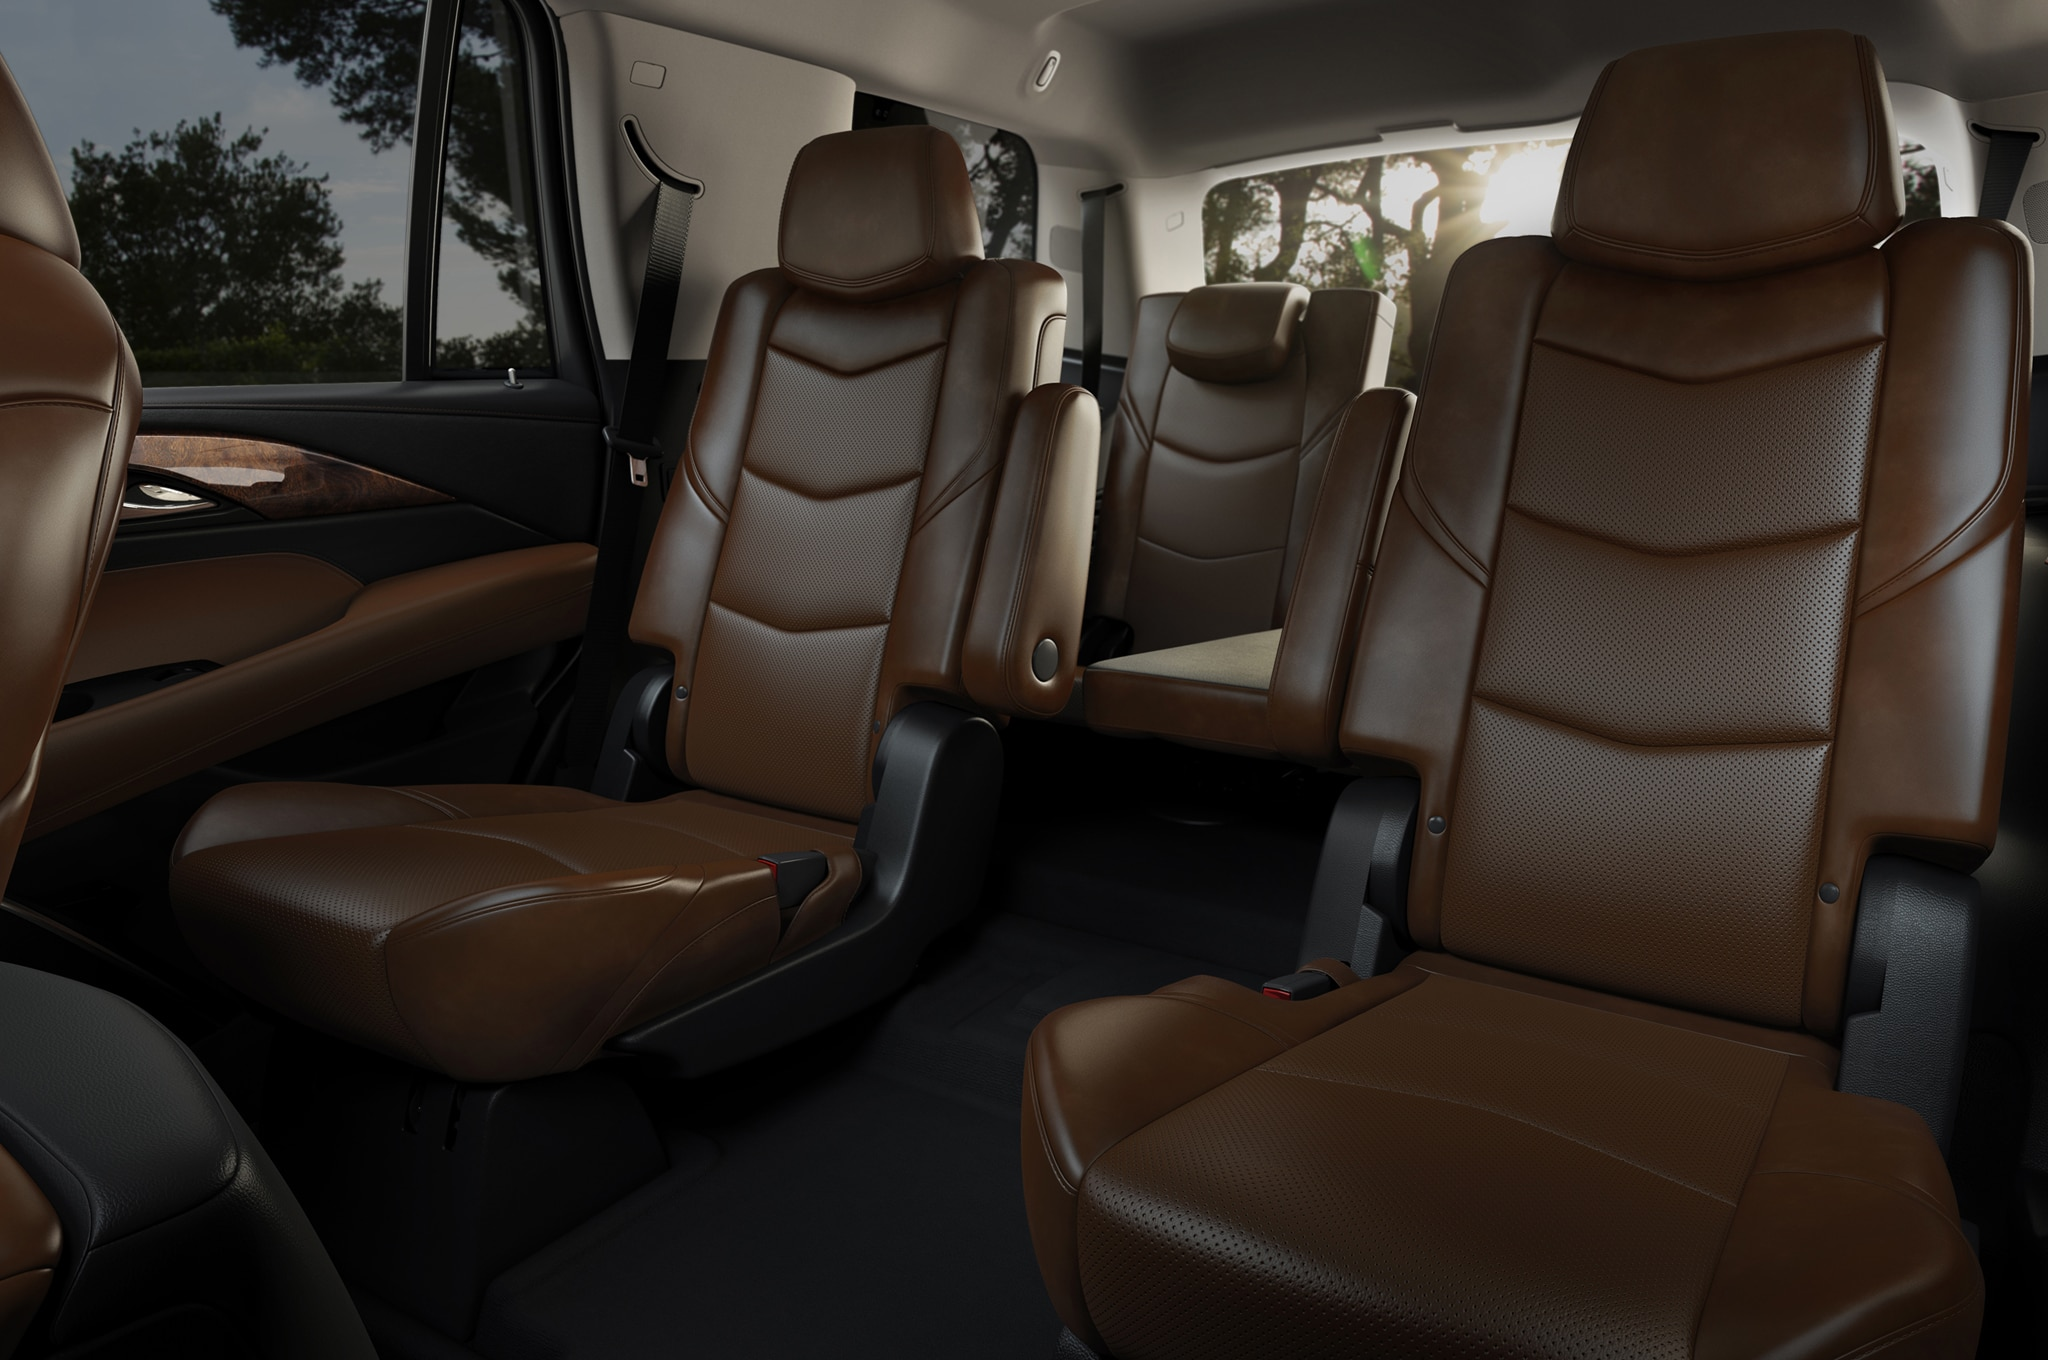 2015 Cadillac Escalade back seats 01